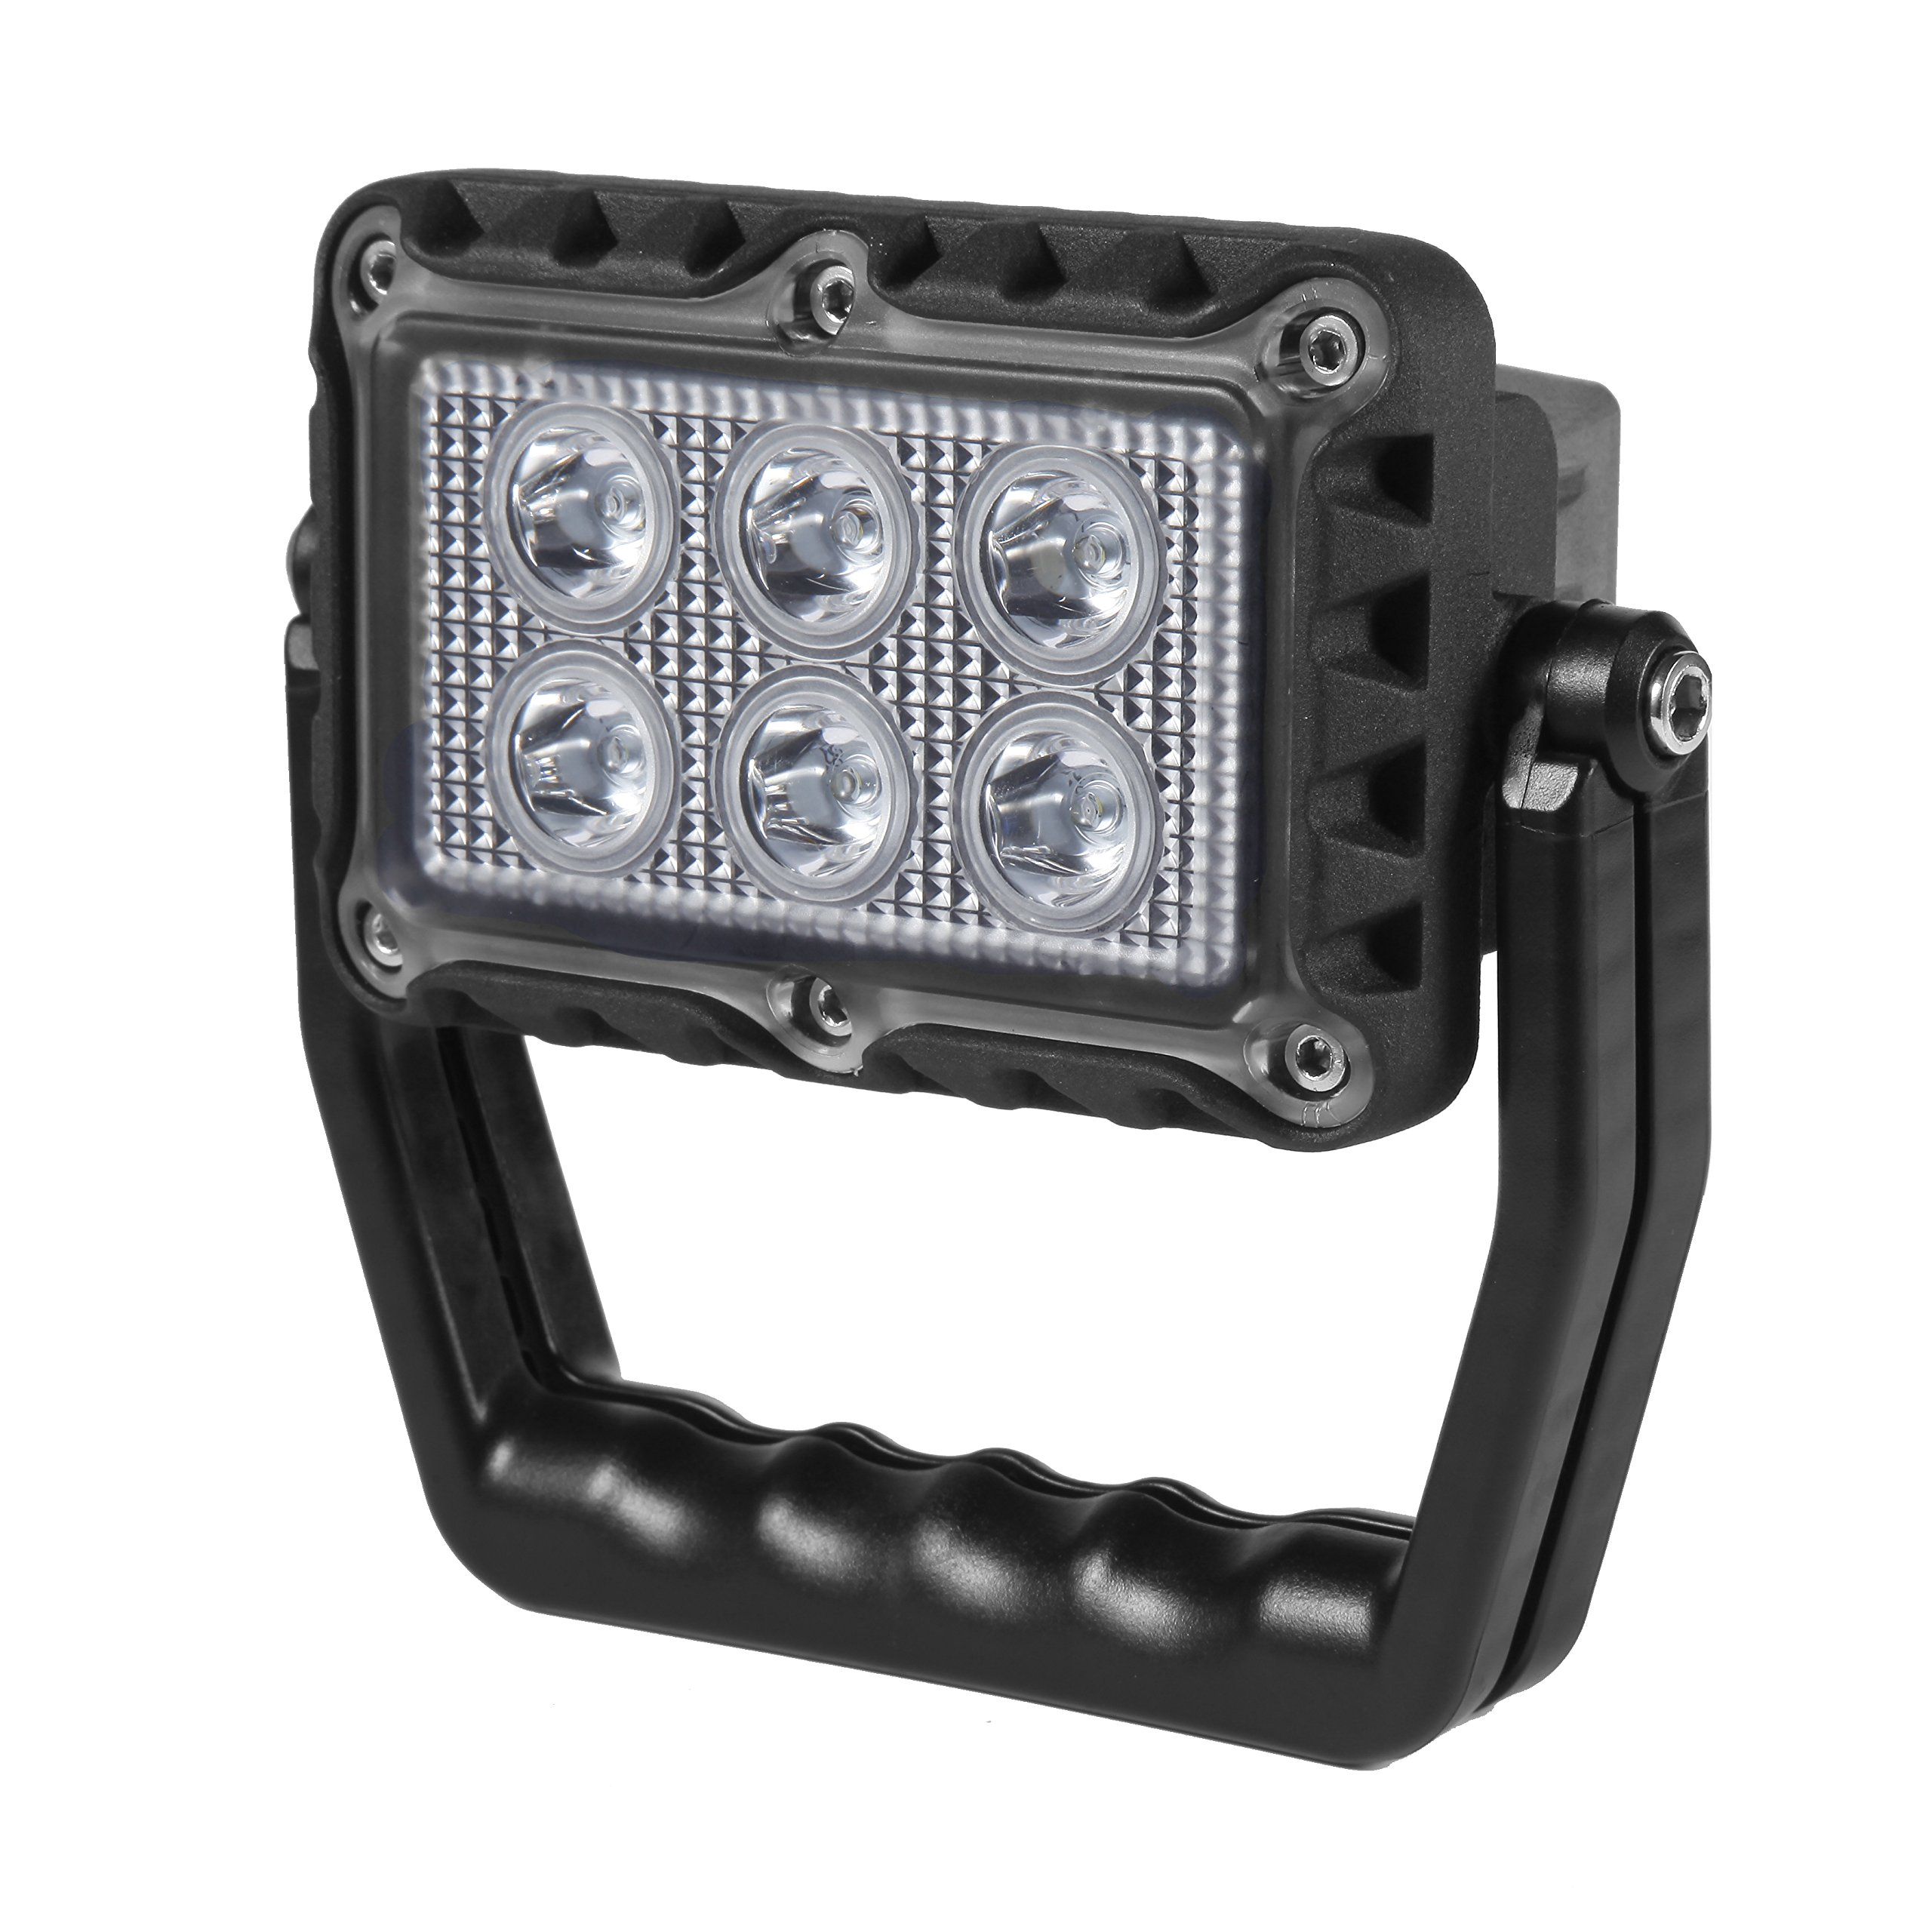 18W Portable LED Emergency Flood Light, Camping Light, Work Light, Emergency SOS Function Flashers and USB Port Power Bank, 6 LED Beads